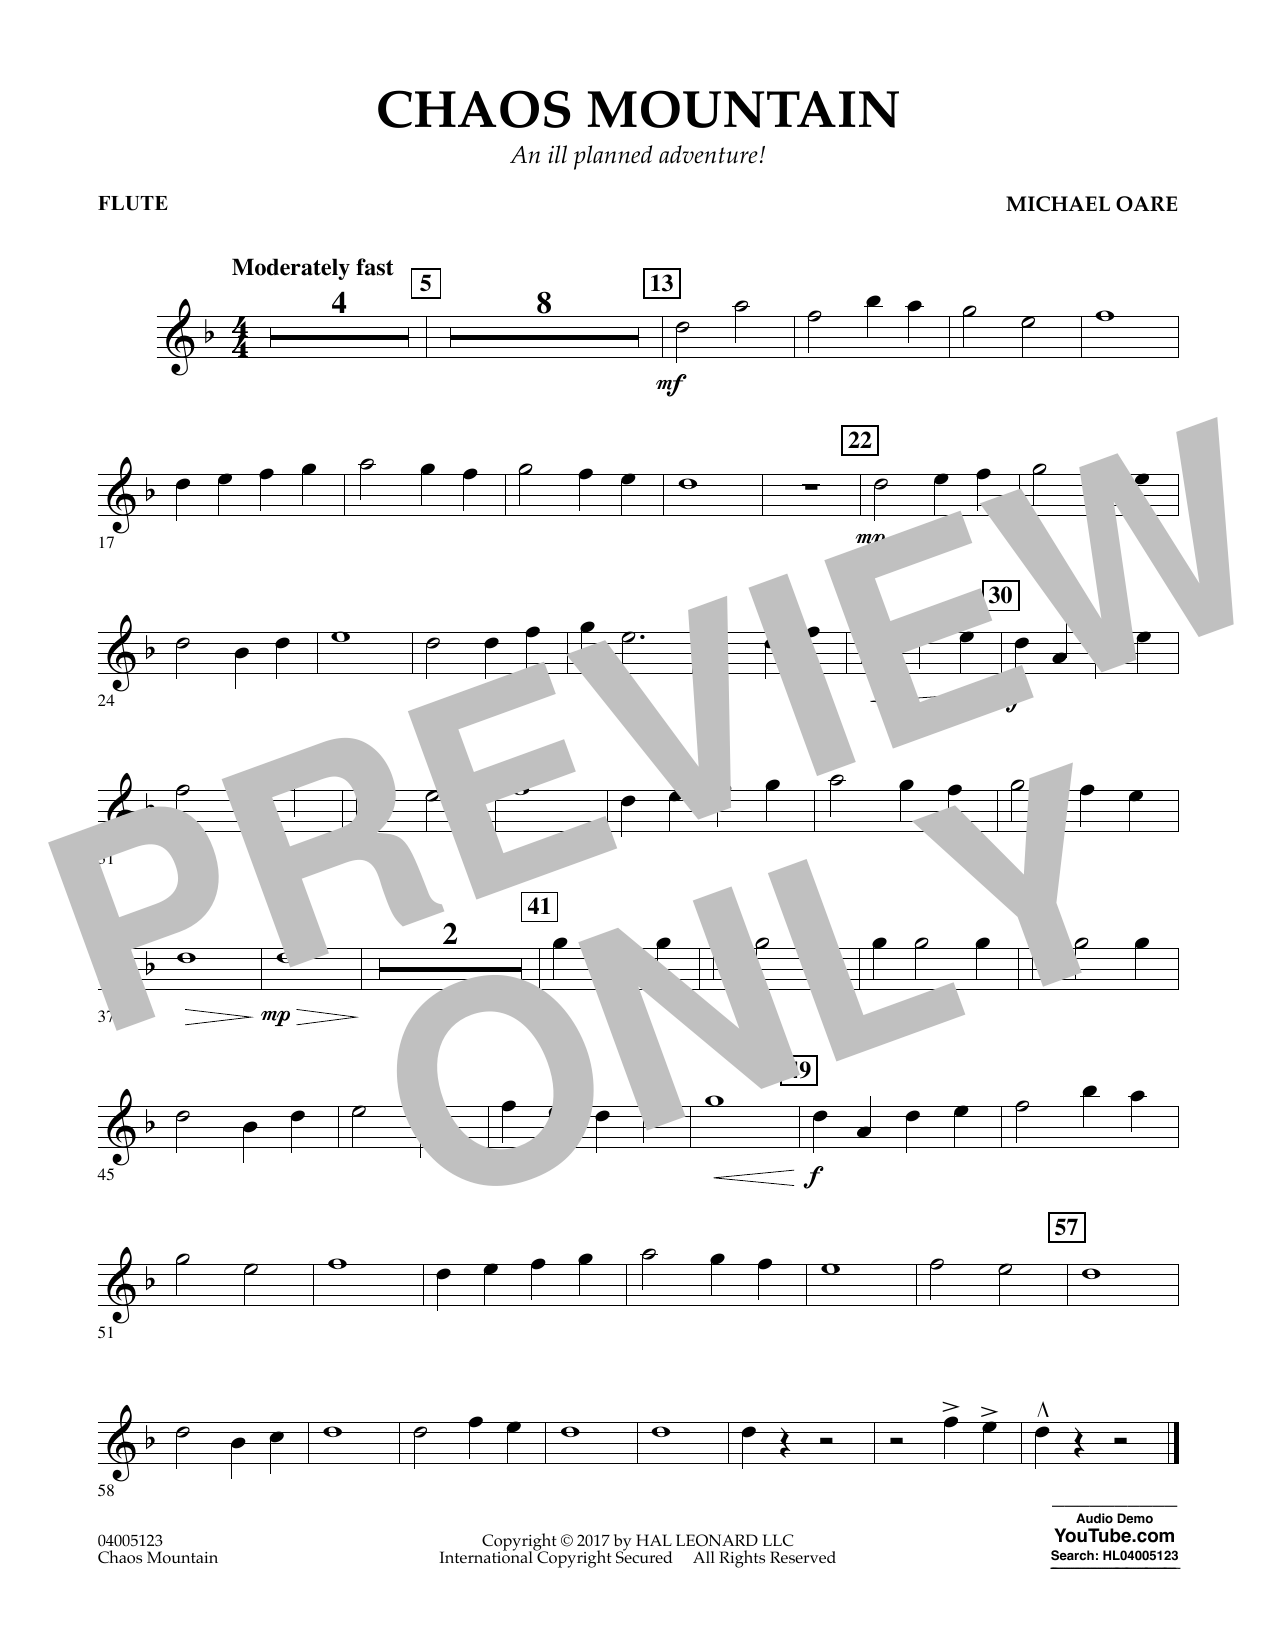 Michael Oare Chaos Mountain - Flute sheet music notes and chords. Download Printable PDF.